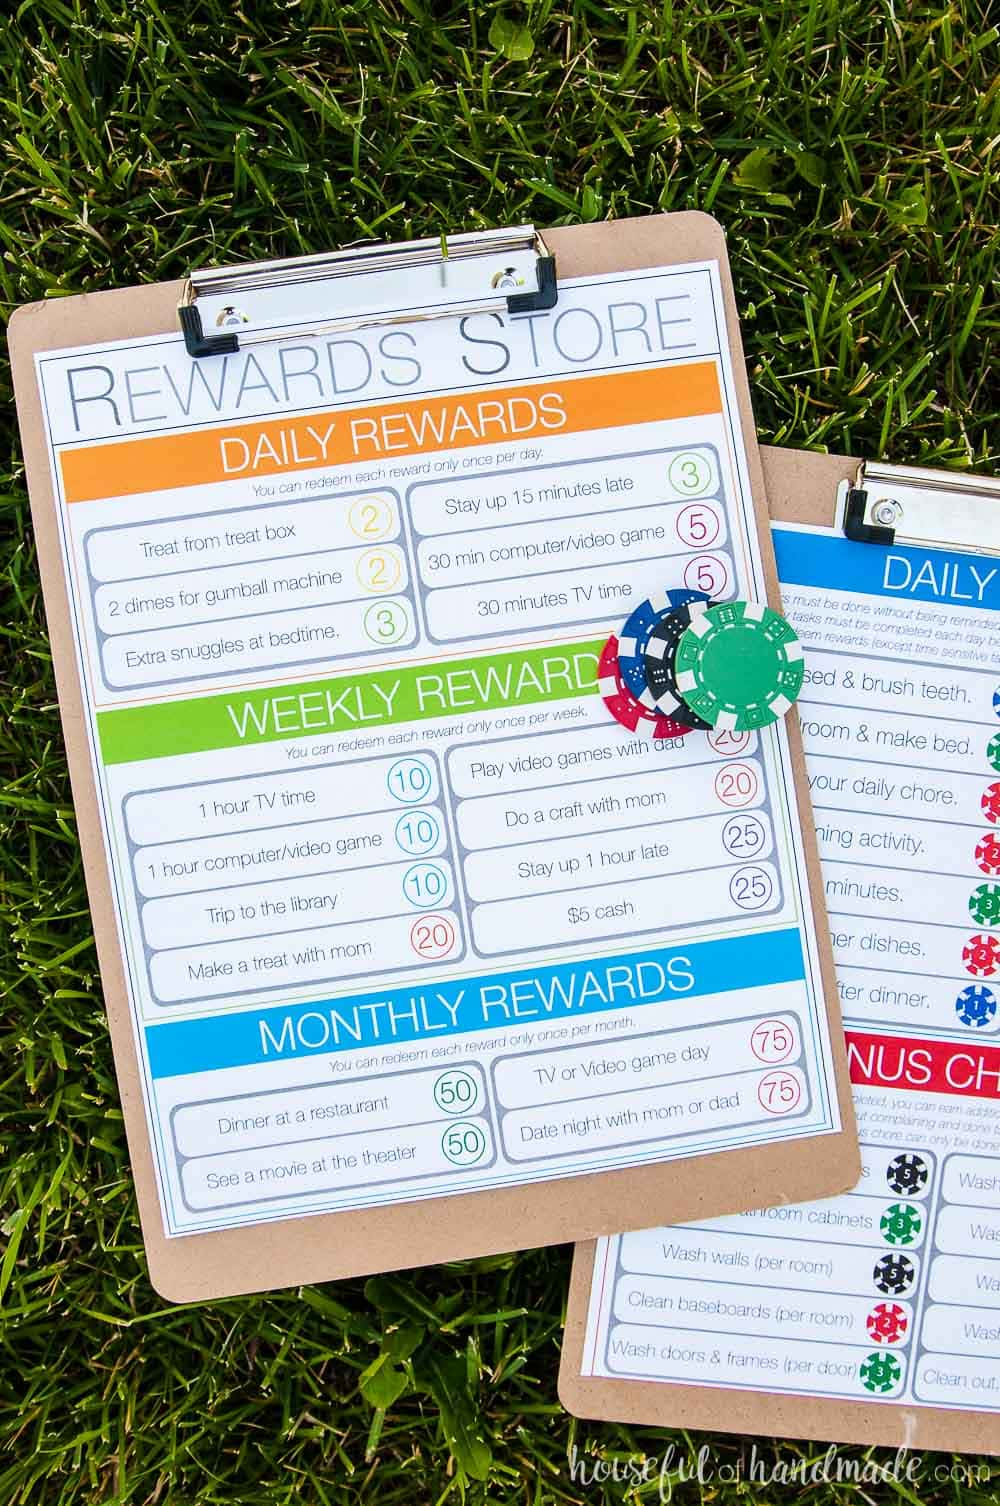 We love our new kids chore system. The rewards system and daily tasks help teach our kids responsibility. Housefulofhandmade.com